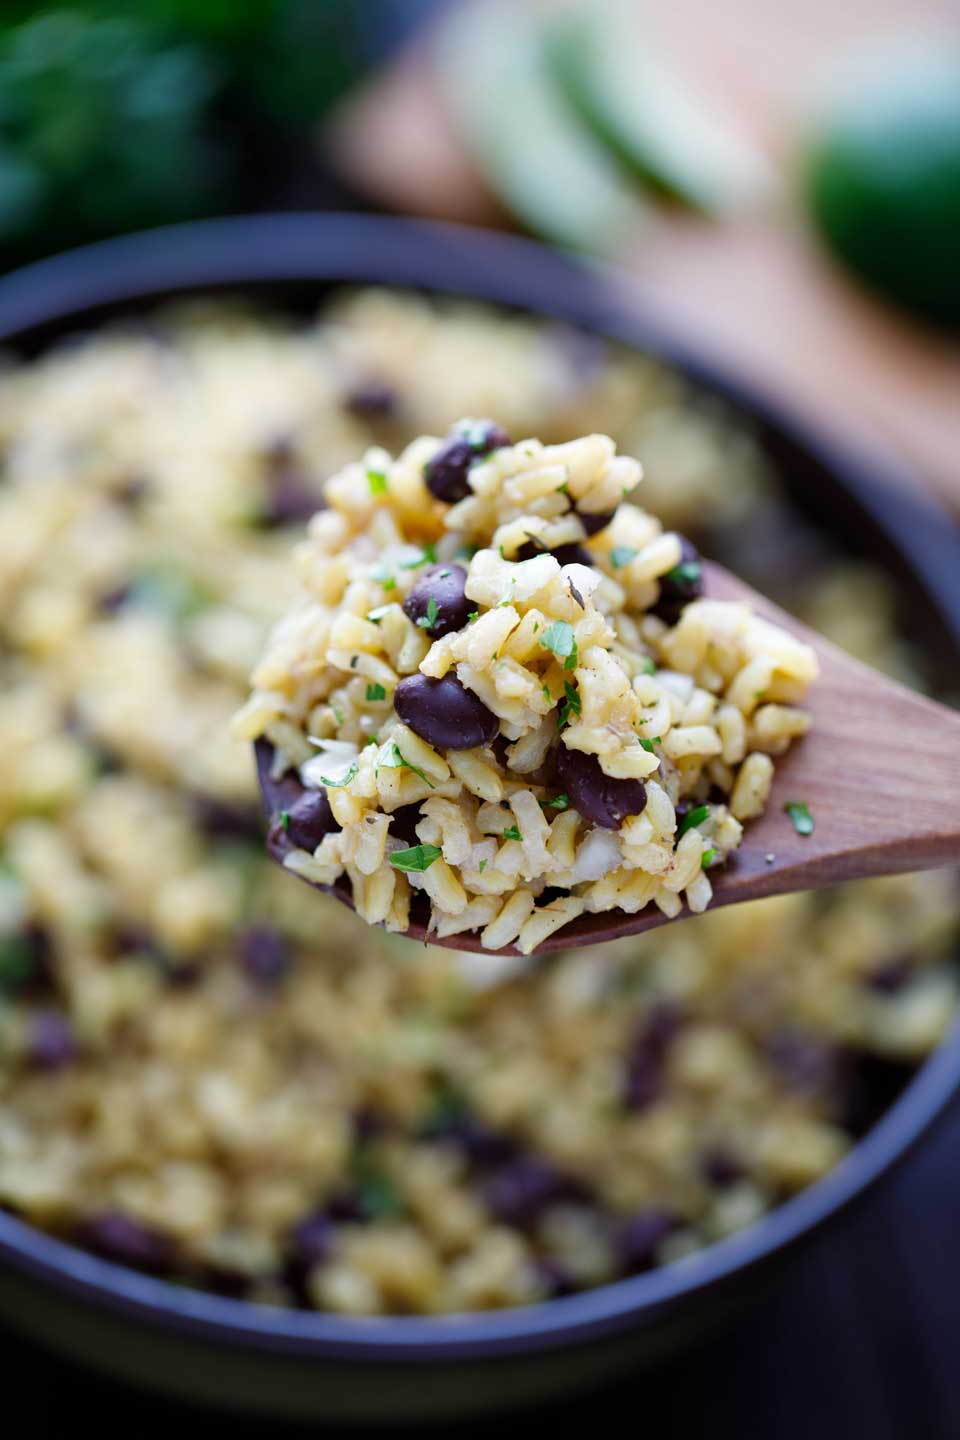 Wooden spoon piled with a scoop of this Easy Rice and Beans recipe, with the serving bowl in the background